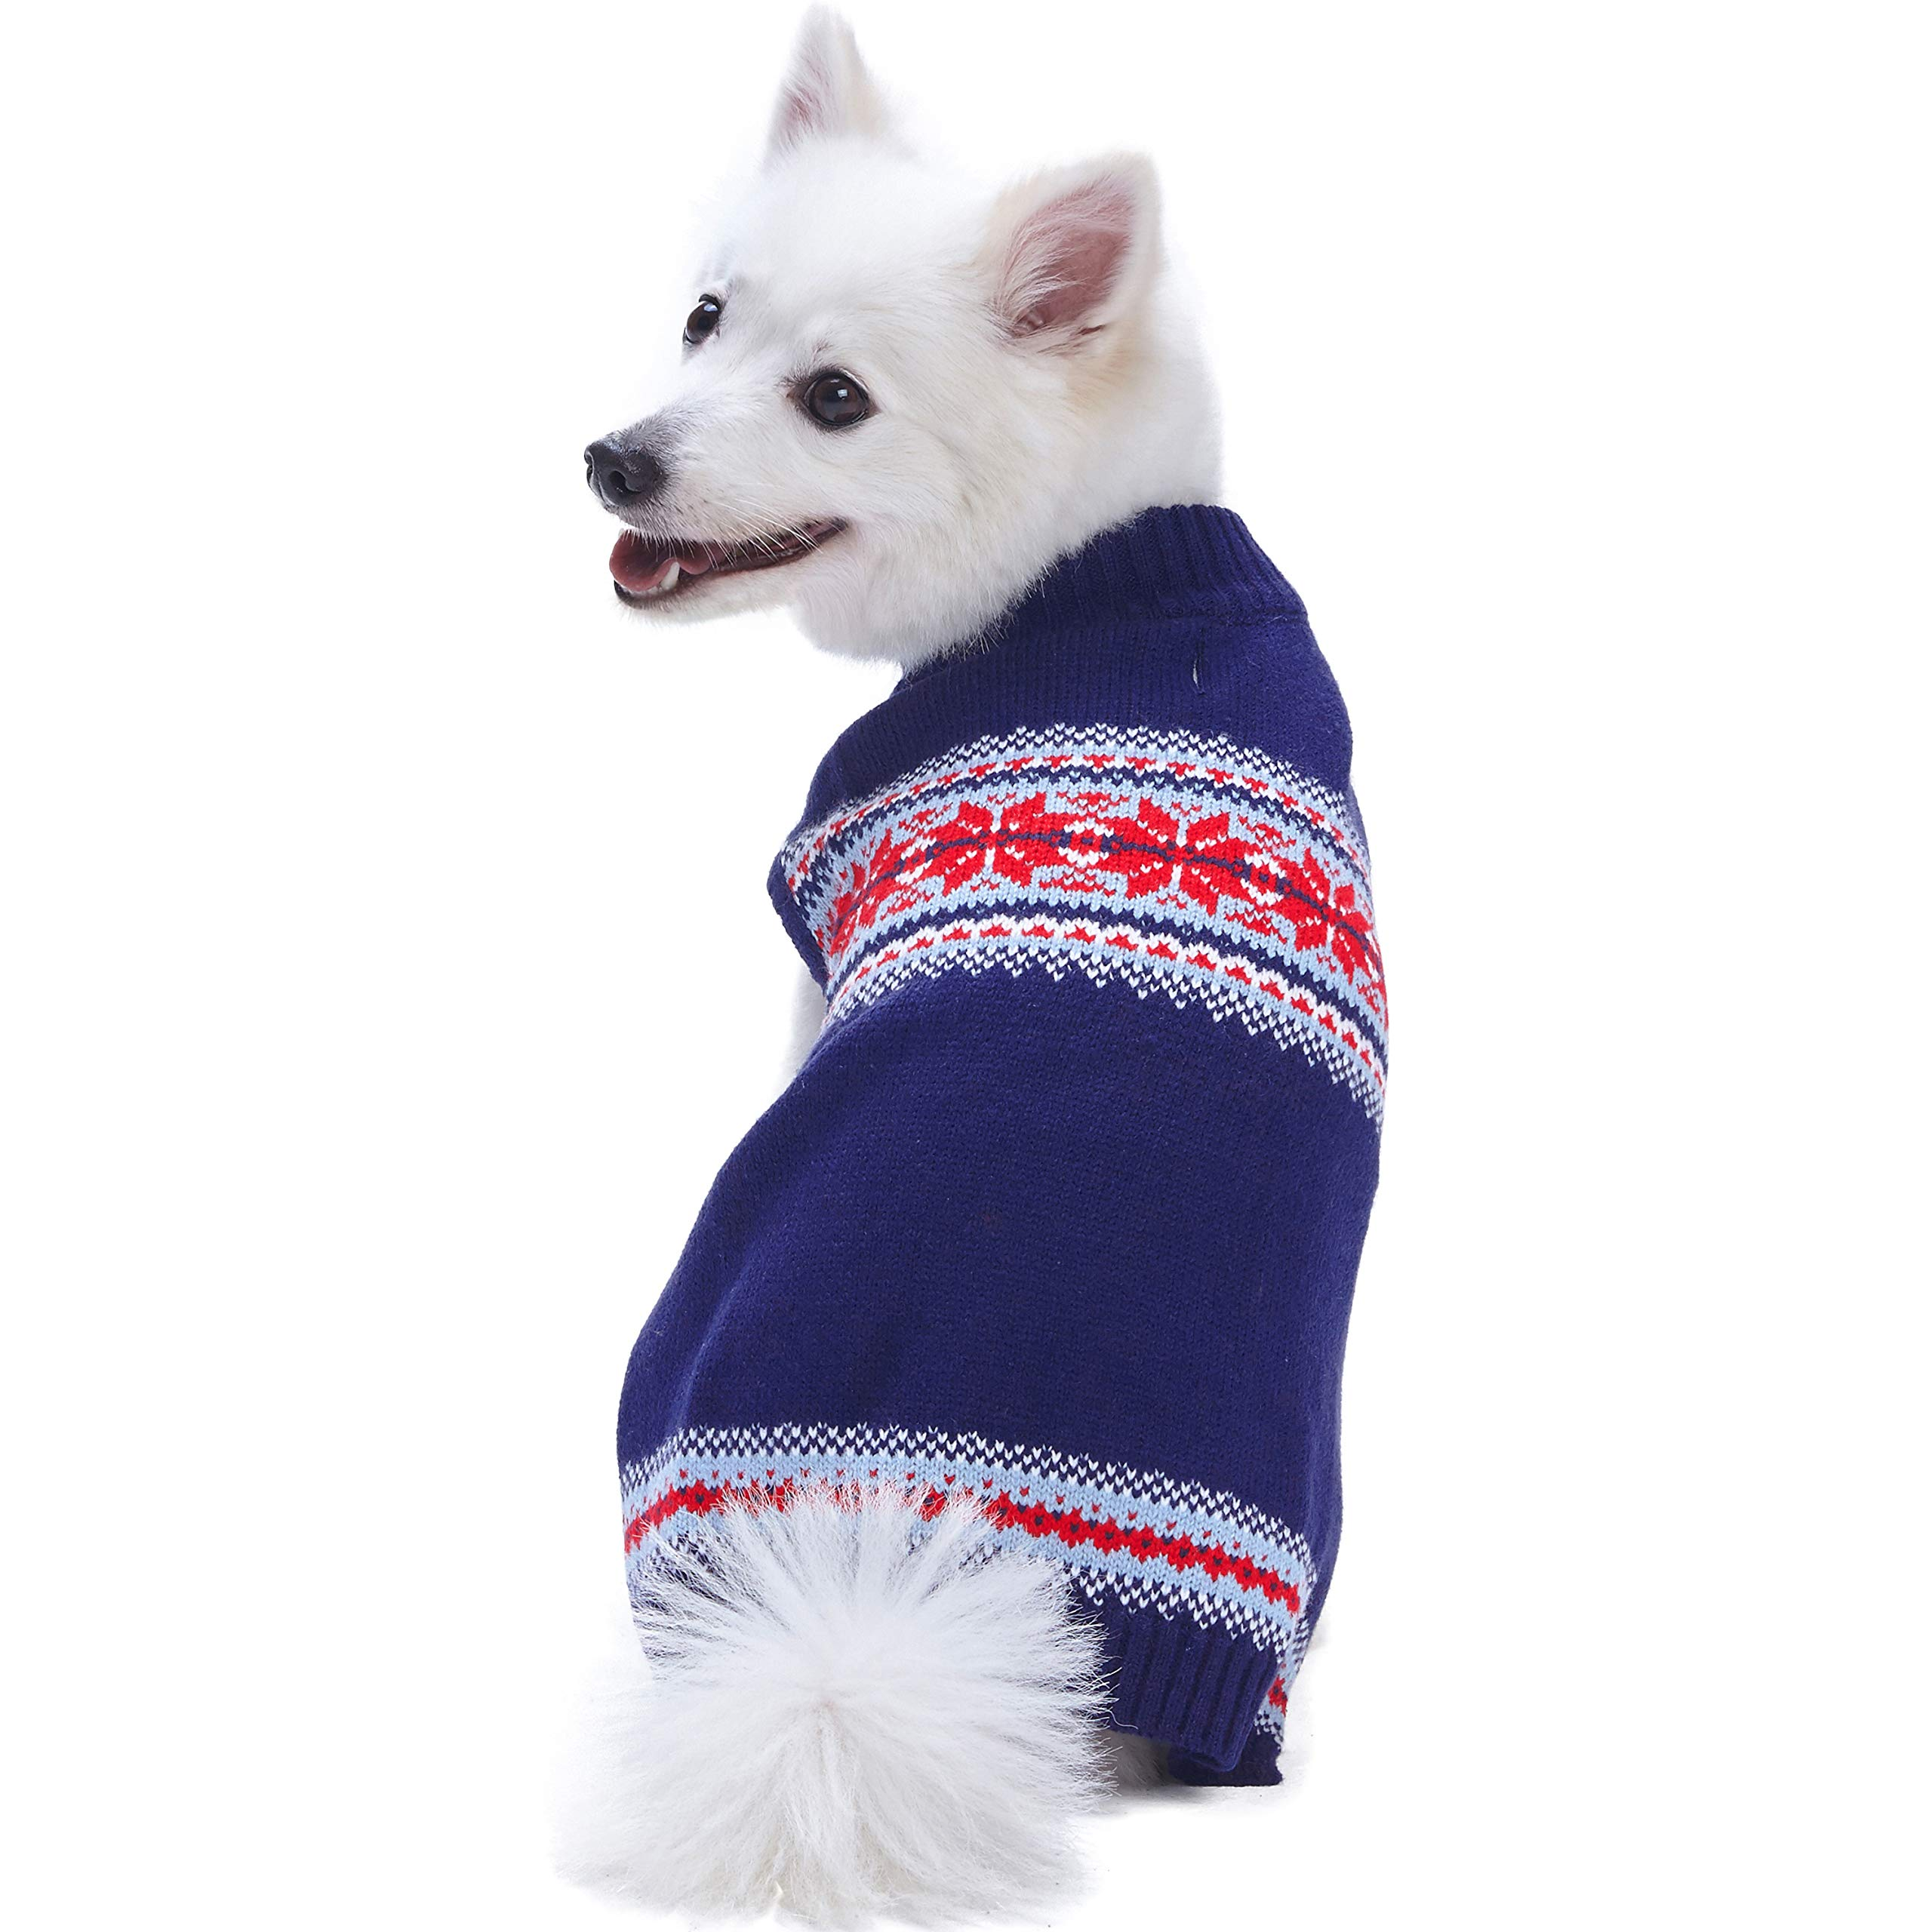 Blueberry Pet 5 Patterns Nordic Fair Isle Snowflake Dog Sweater or Unisex  Sweater product image 4d0e634b7